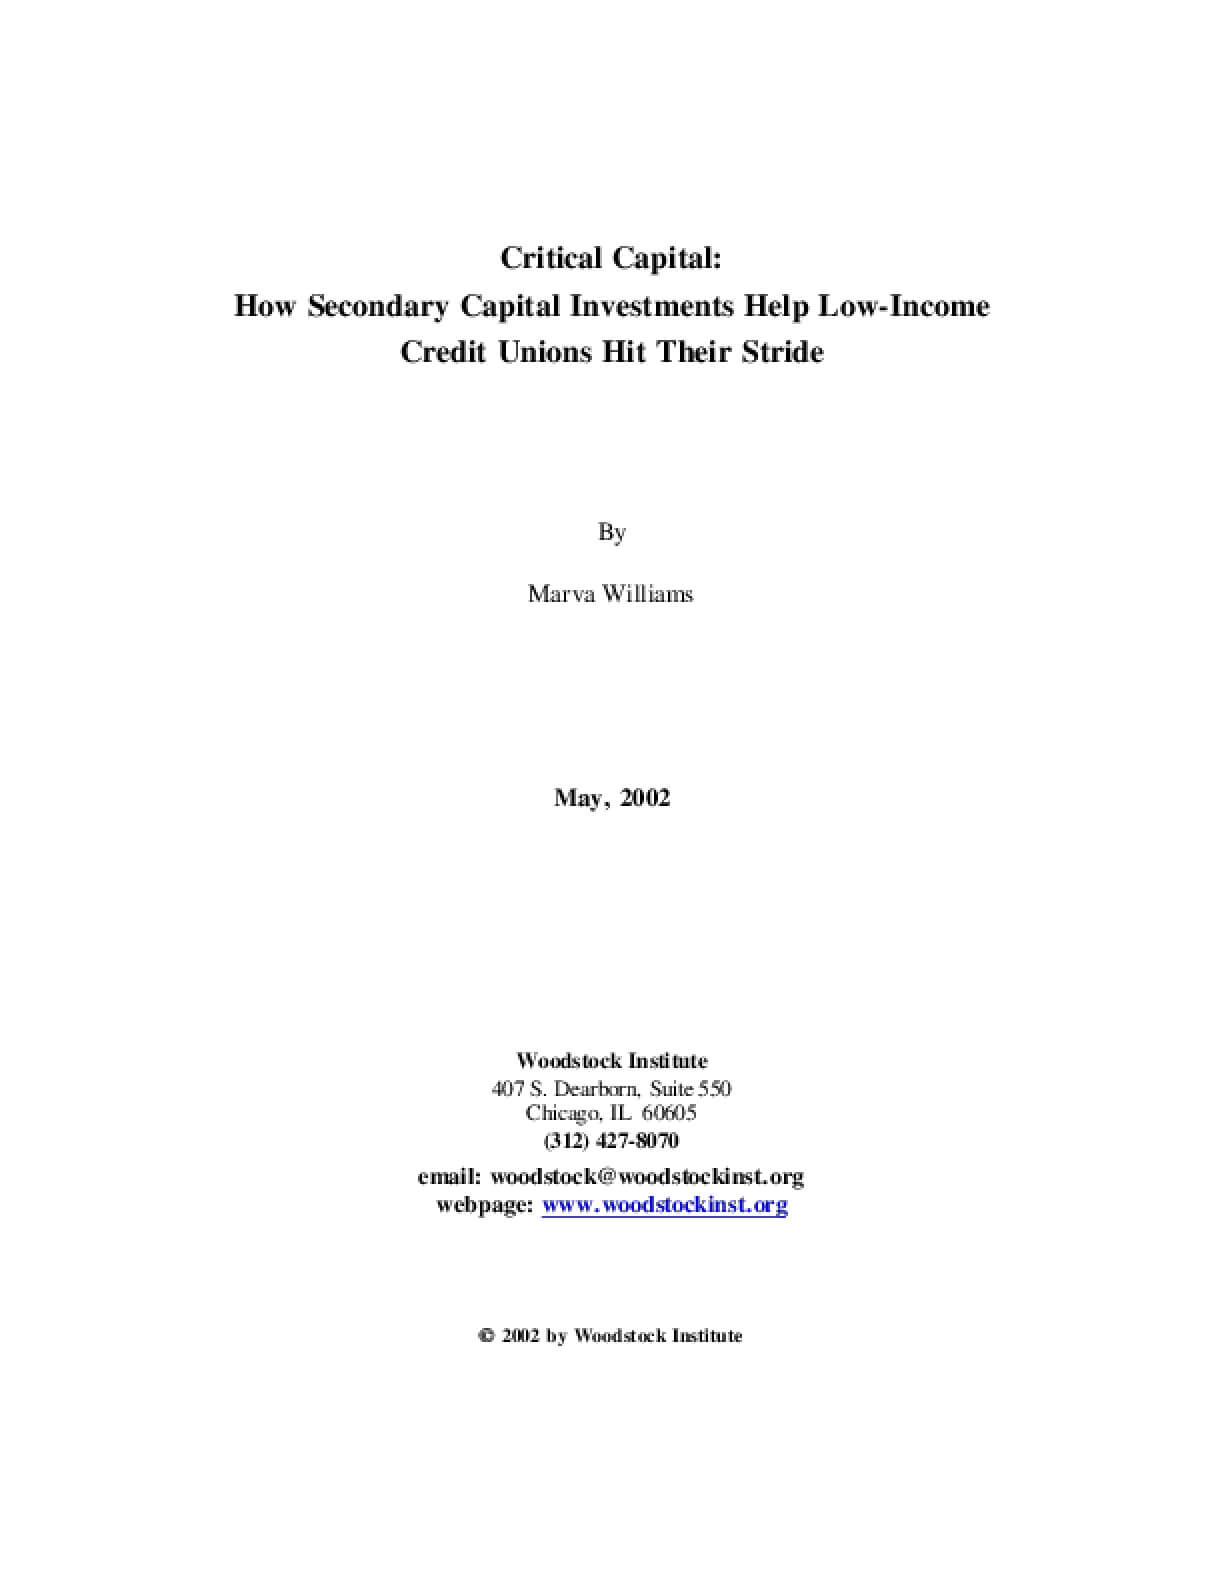 Critical Capital: How Secondary Capital Investments Help Low-Income Credit Unions Hit Their Stride